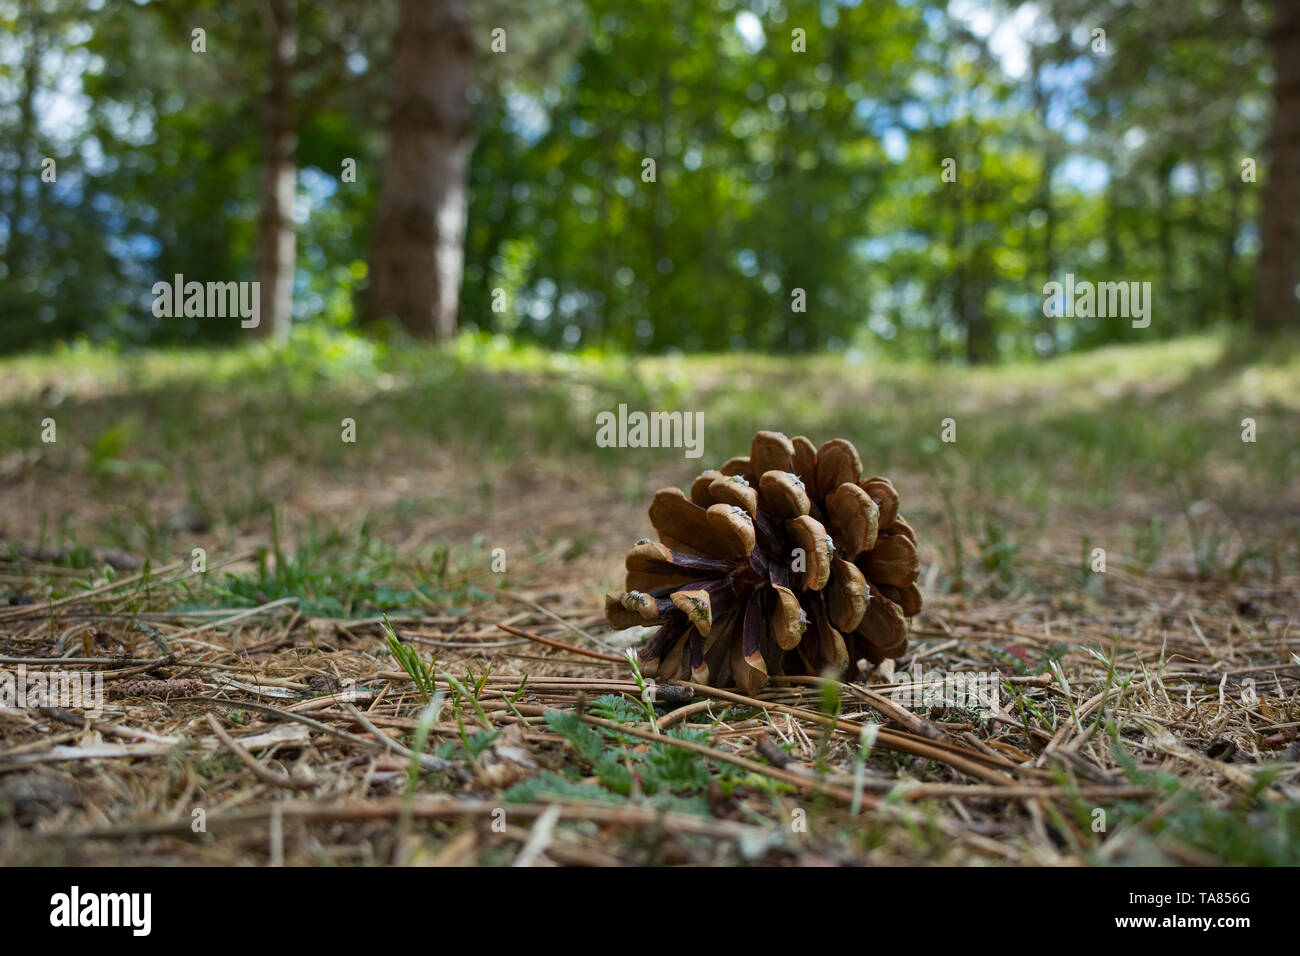 Cone Stock Photos Cone Stock Images Page 3 Alamy